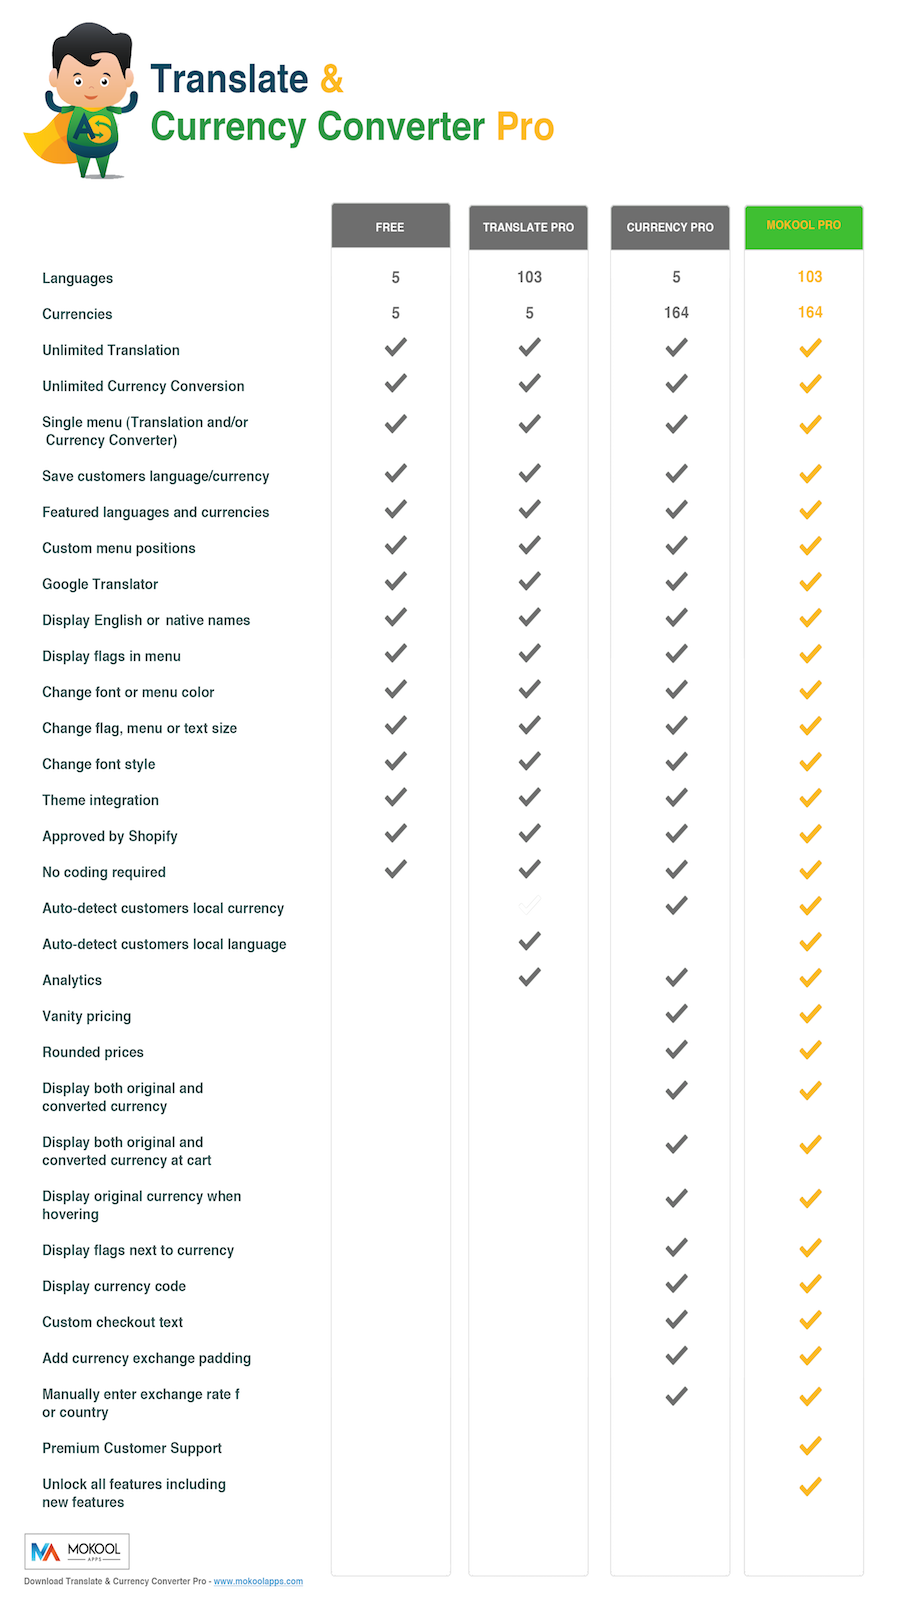 Comparison chart  for Translation & Currency Converter